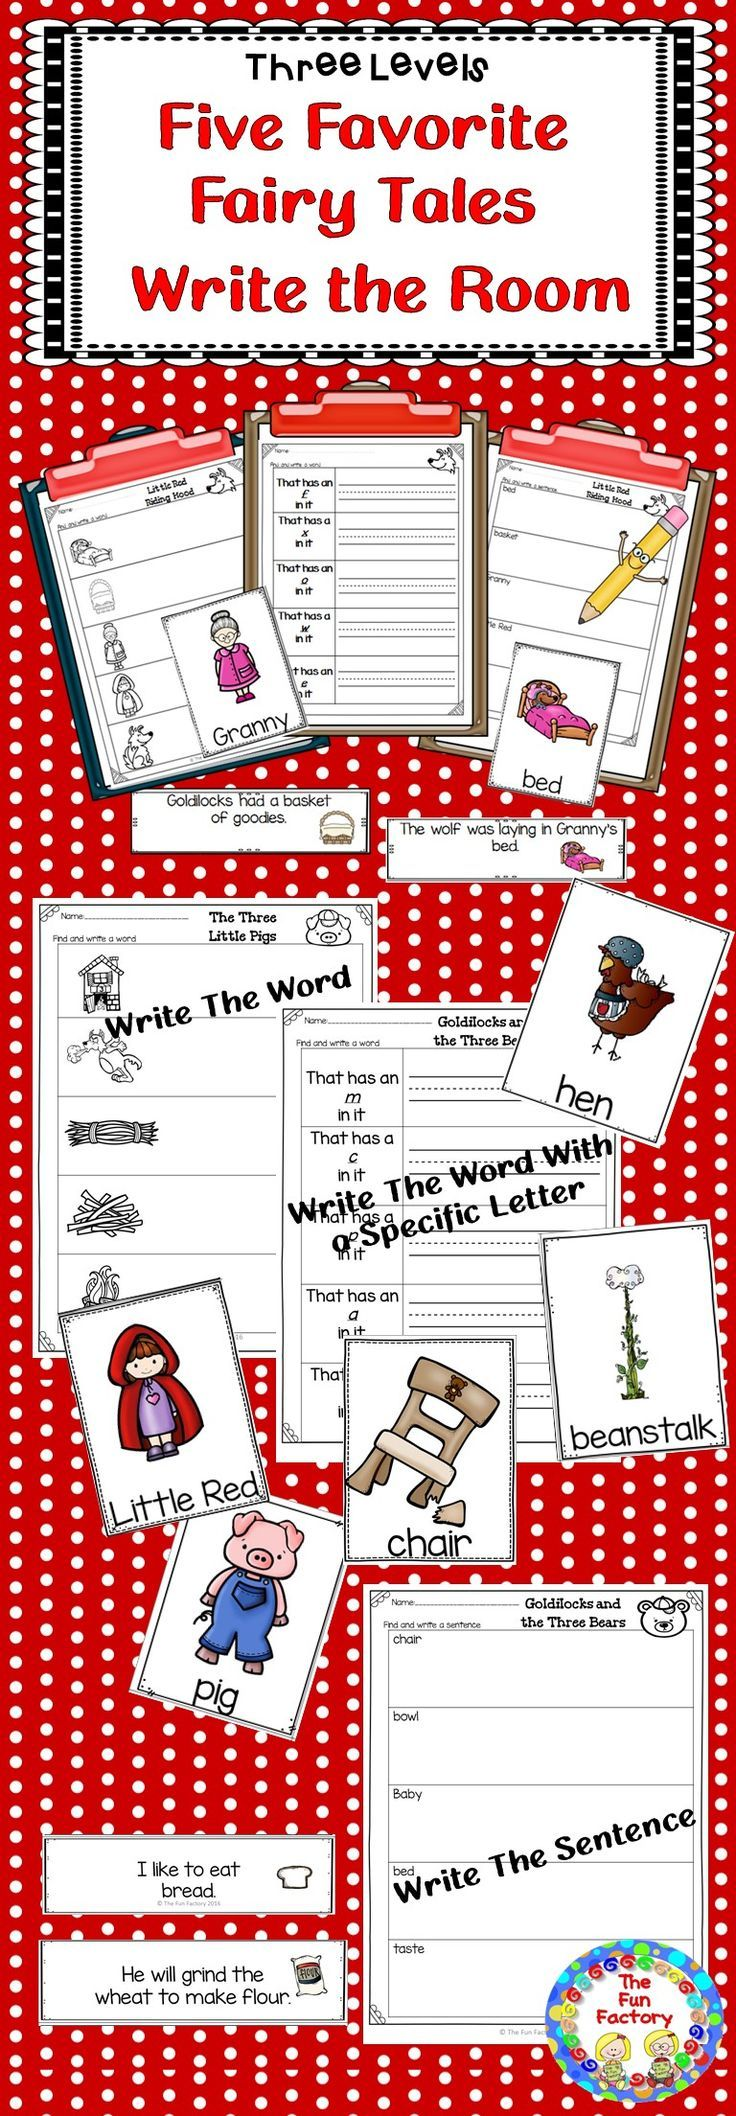 You can differentiate this Write the Room activity by using the 3 levels of recording sheets included.